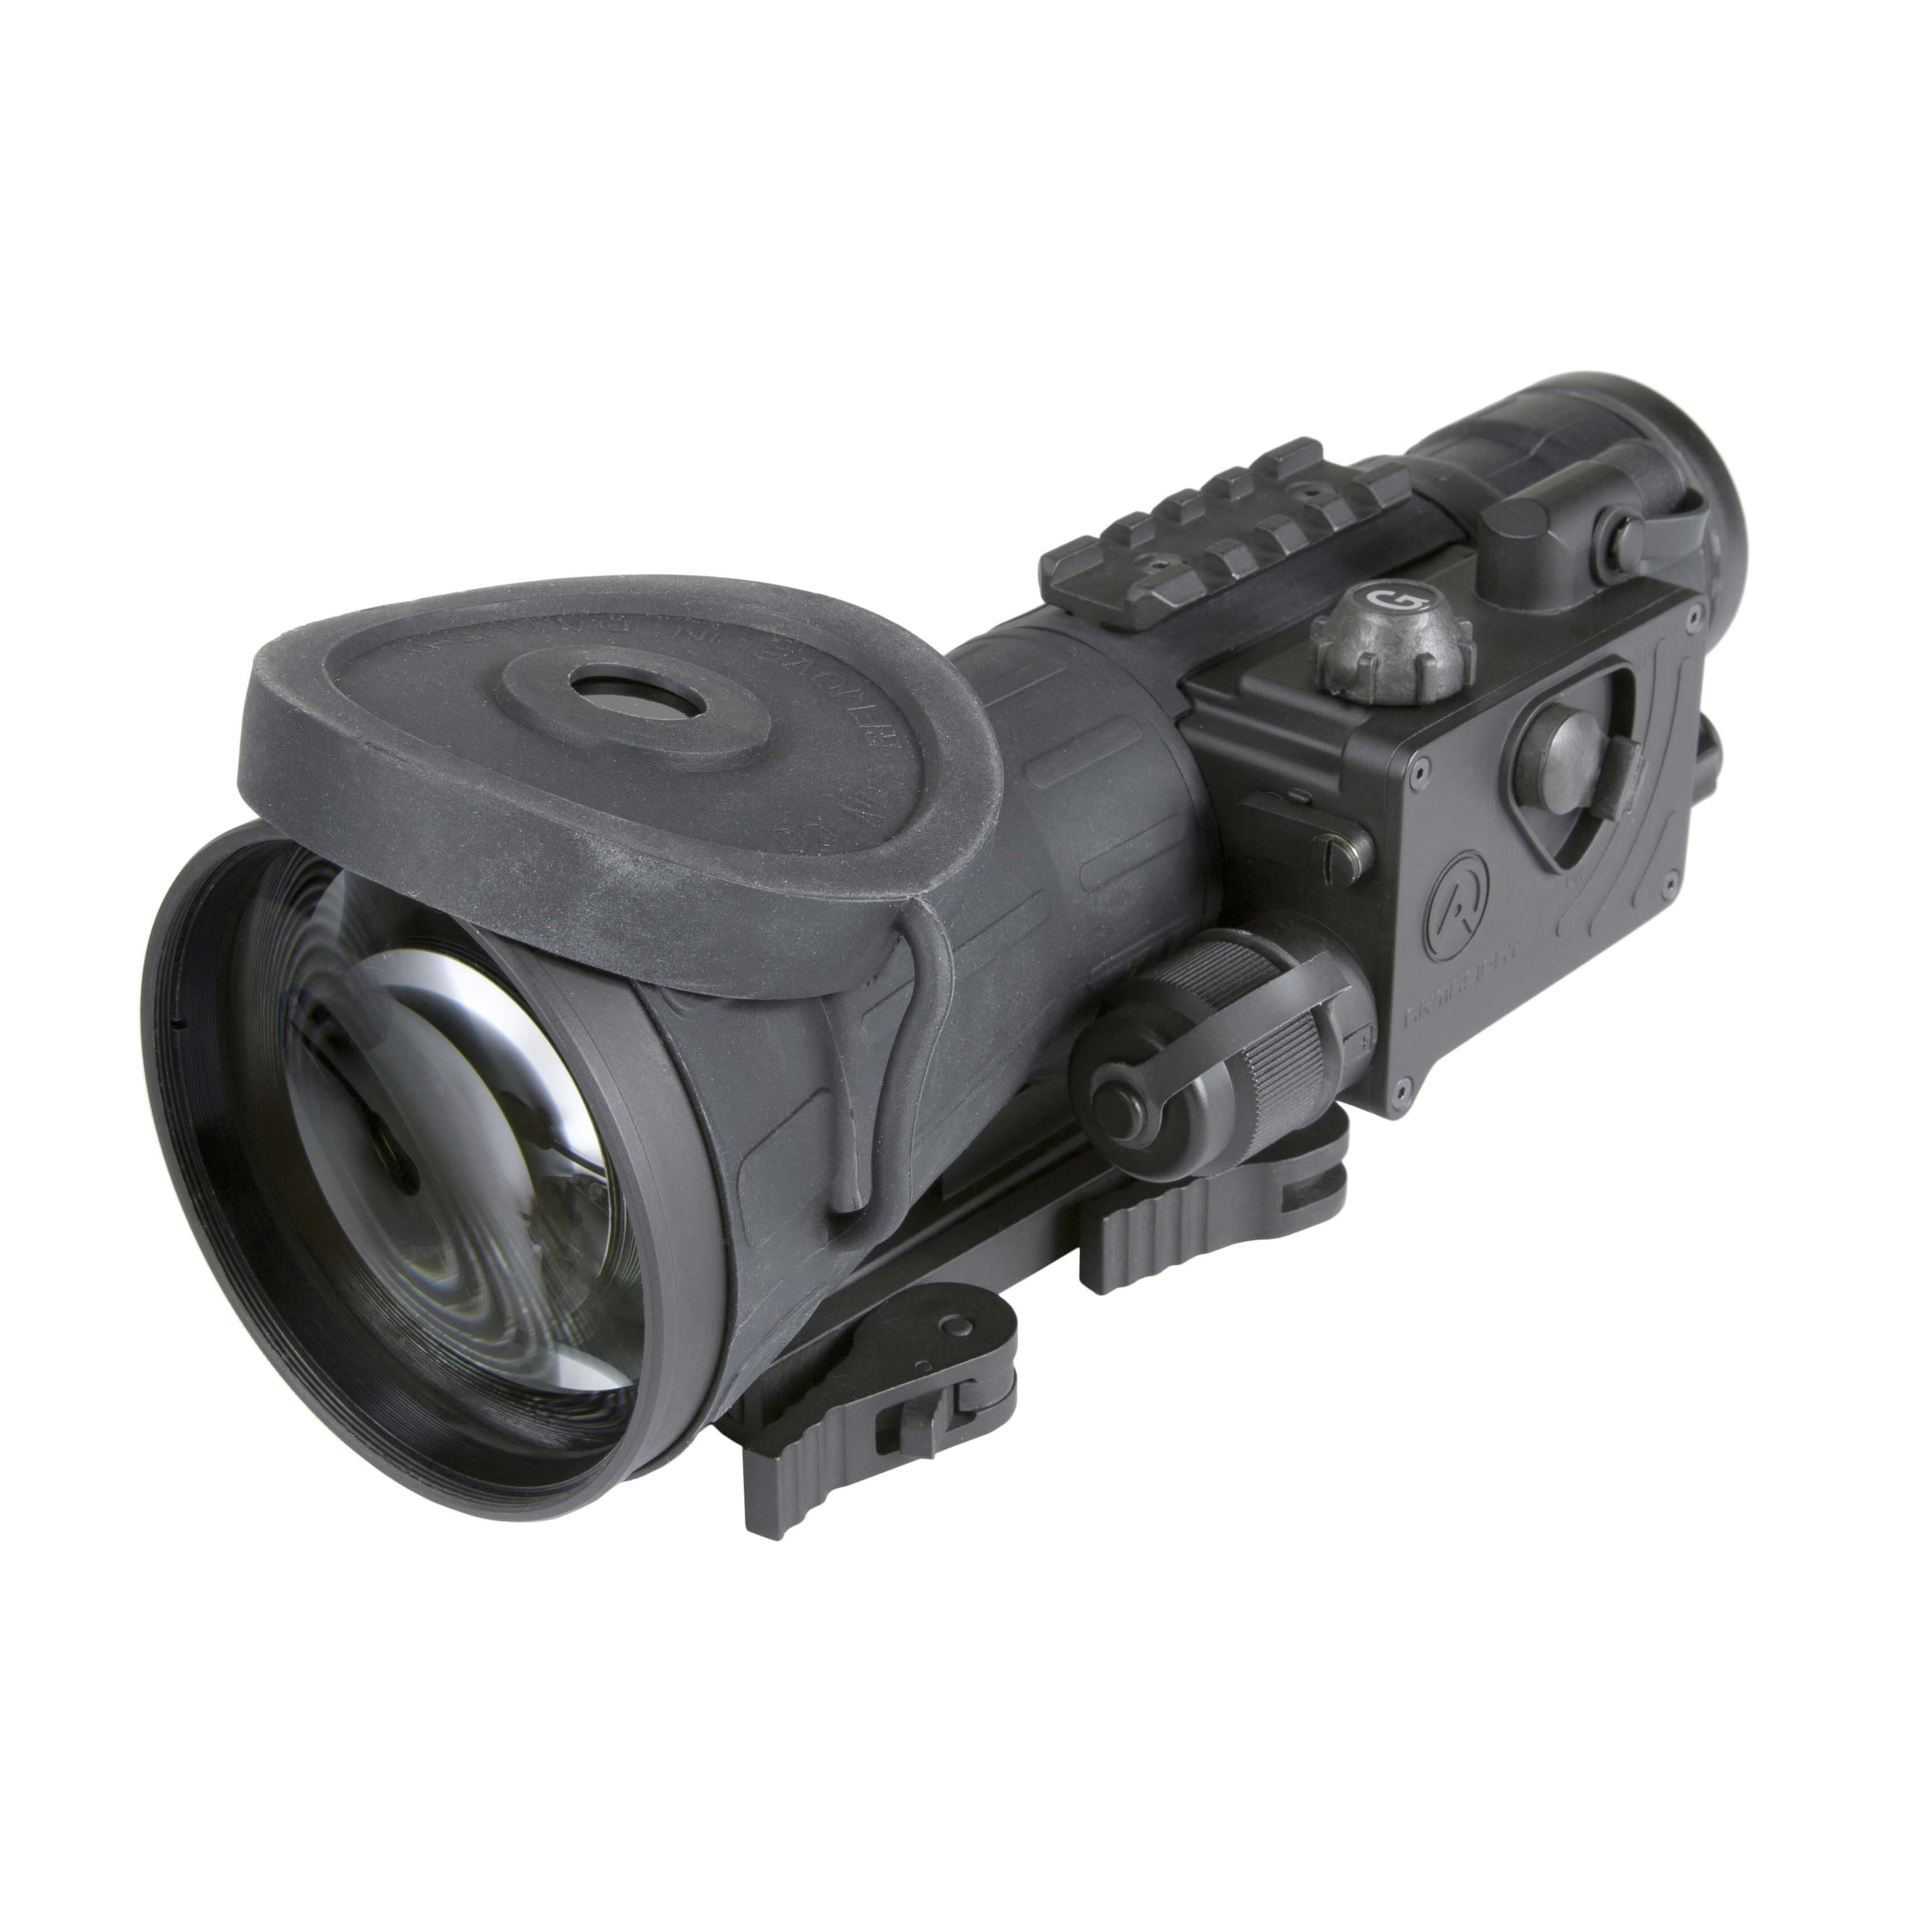 Armasight  CO-LR HD MG Black Night Vision Long Range Clip-on System Gen 2+ High Definition With Manual Gain